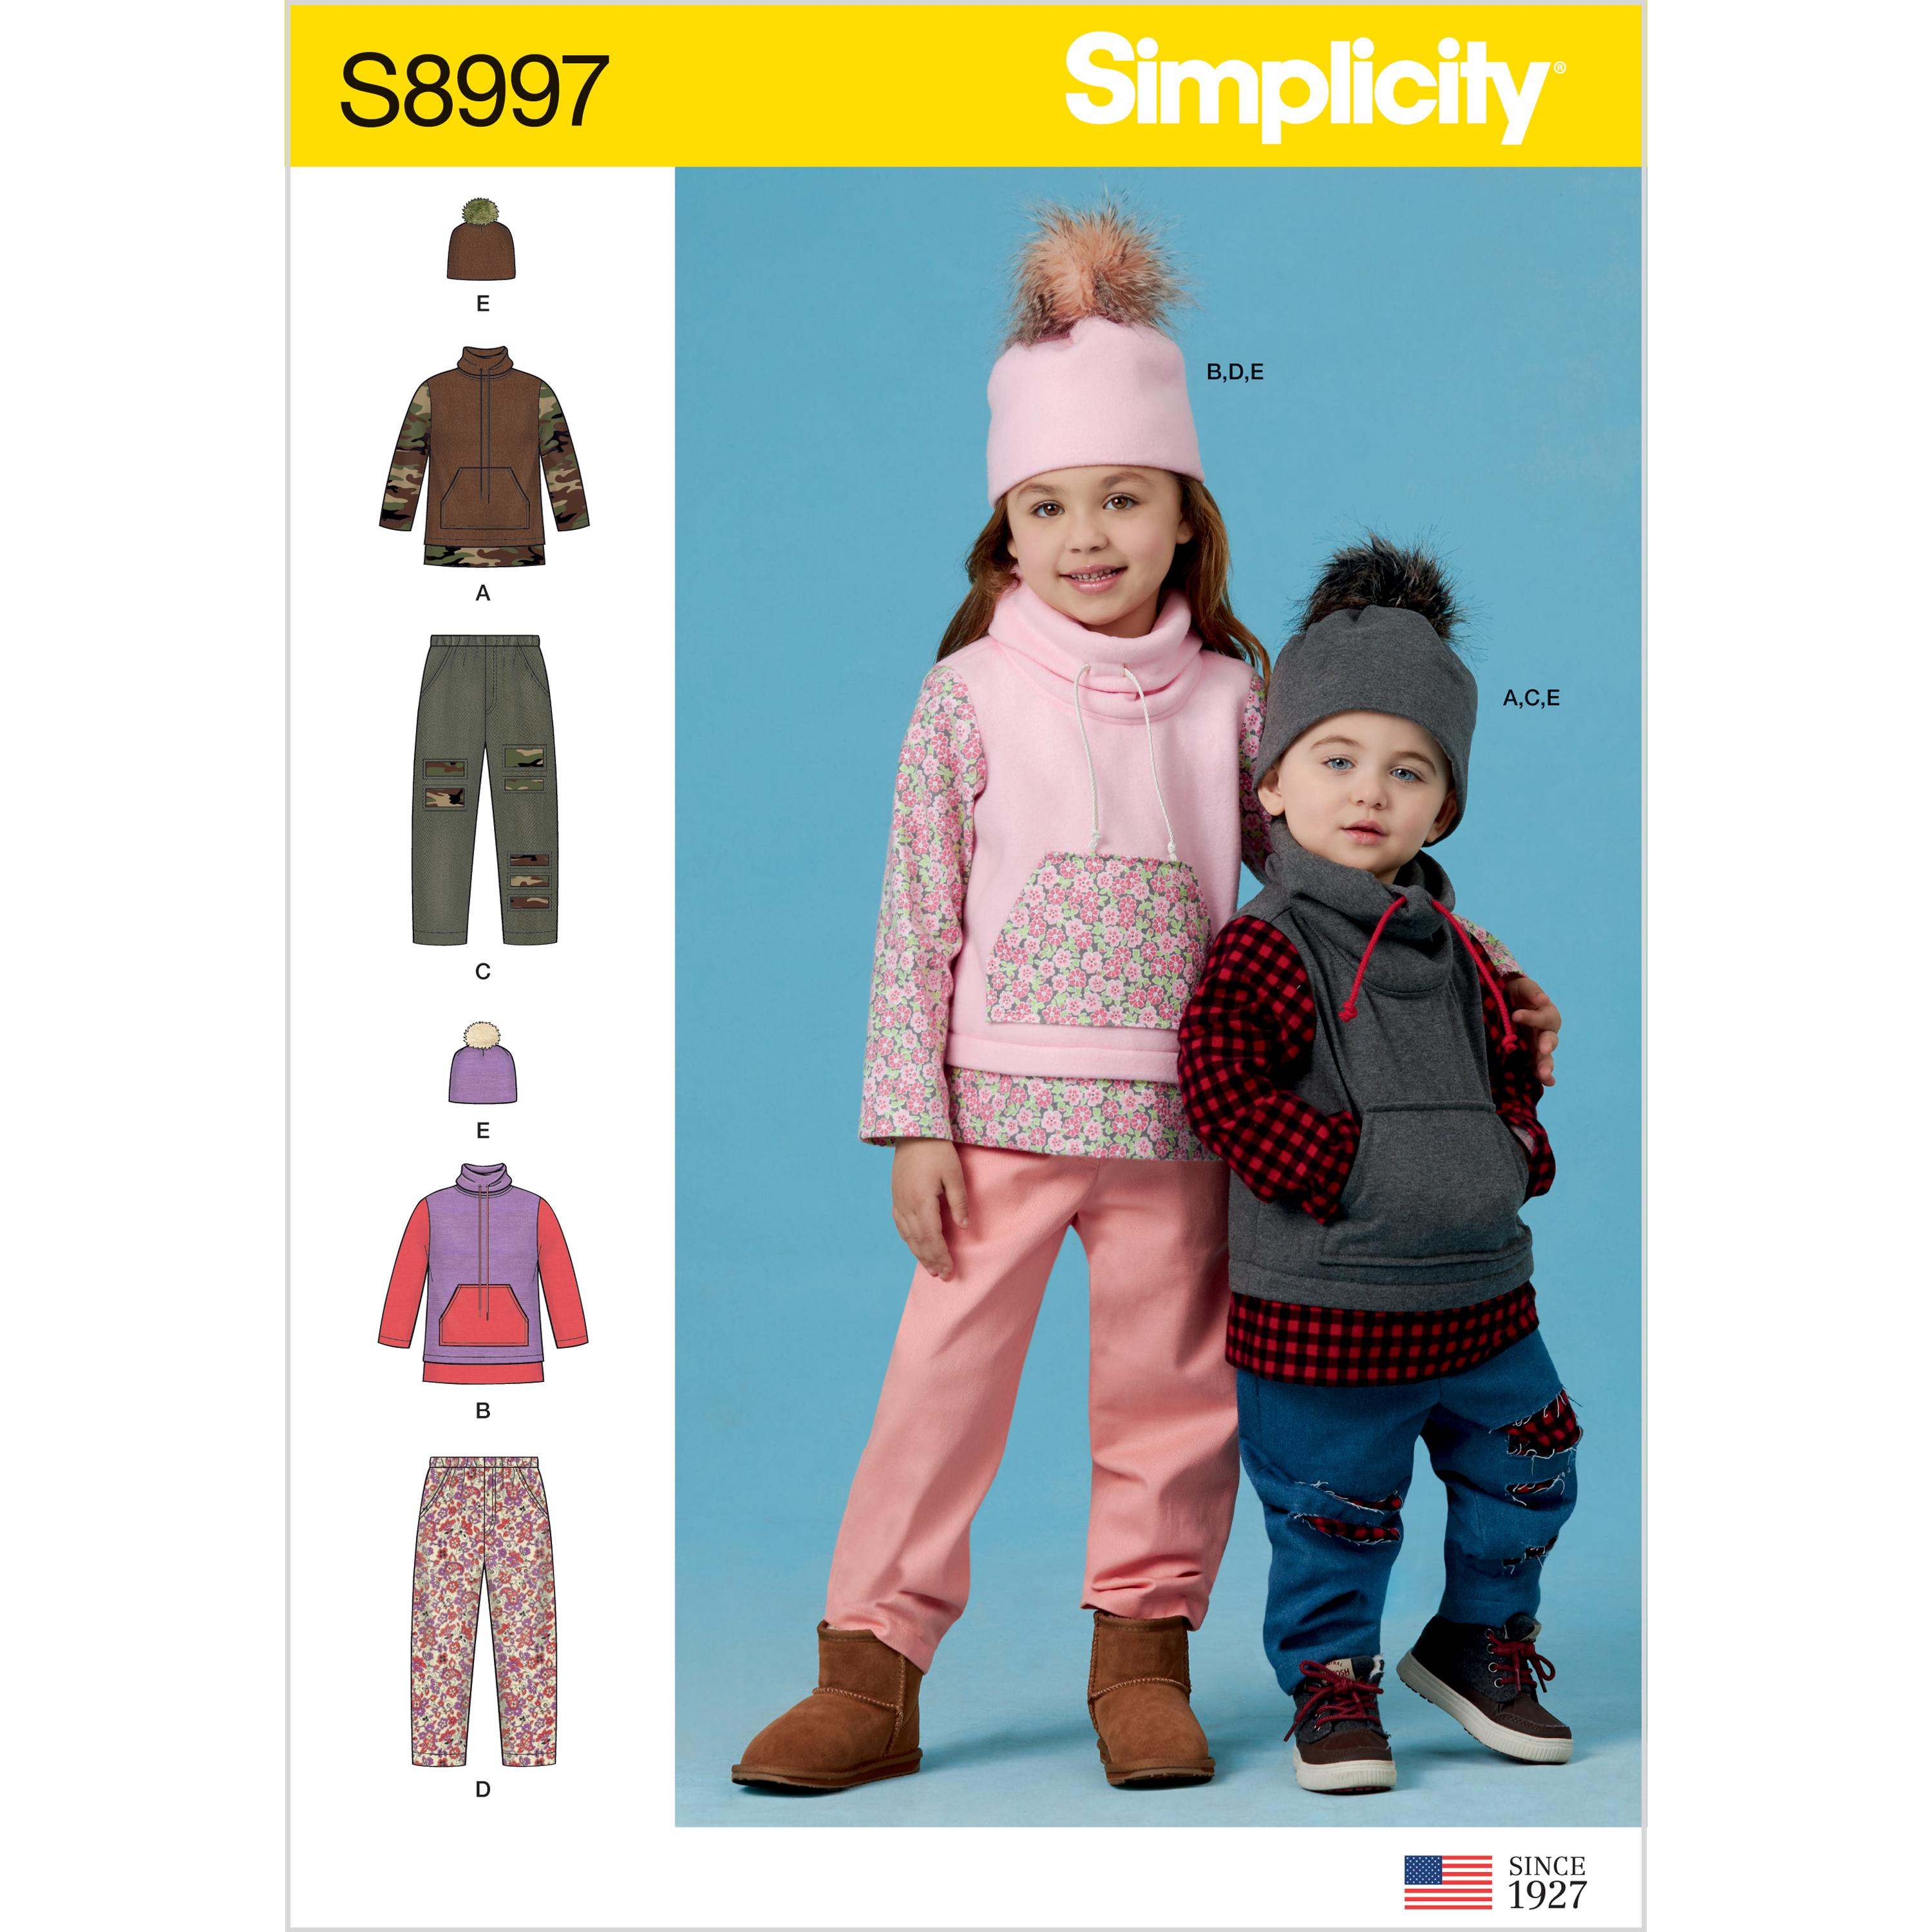 Simplicity S8997 Toddlers' and Children's Pants, Knit Top and Hat